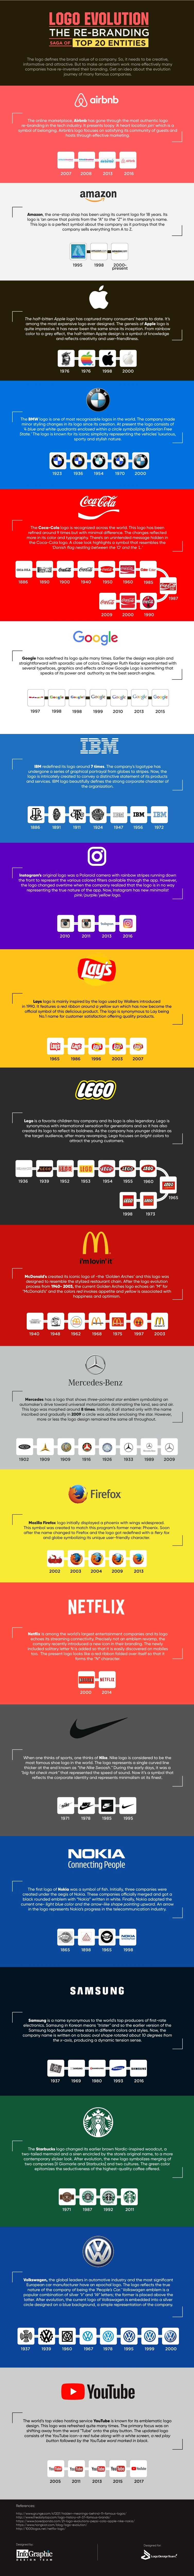 Logo Evolution: The Re-branding Saga of 20 Top Entitles #Infographic